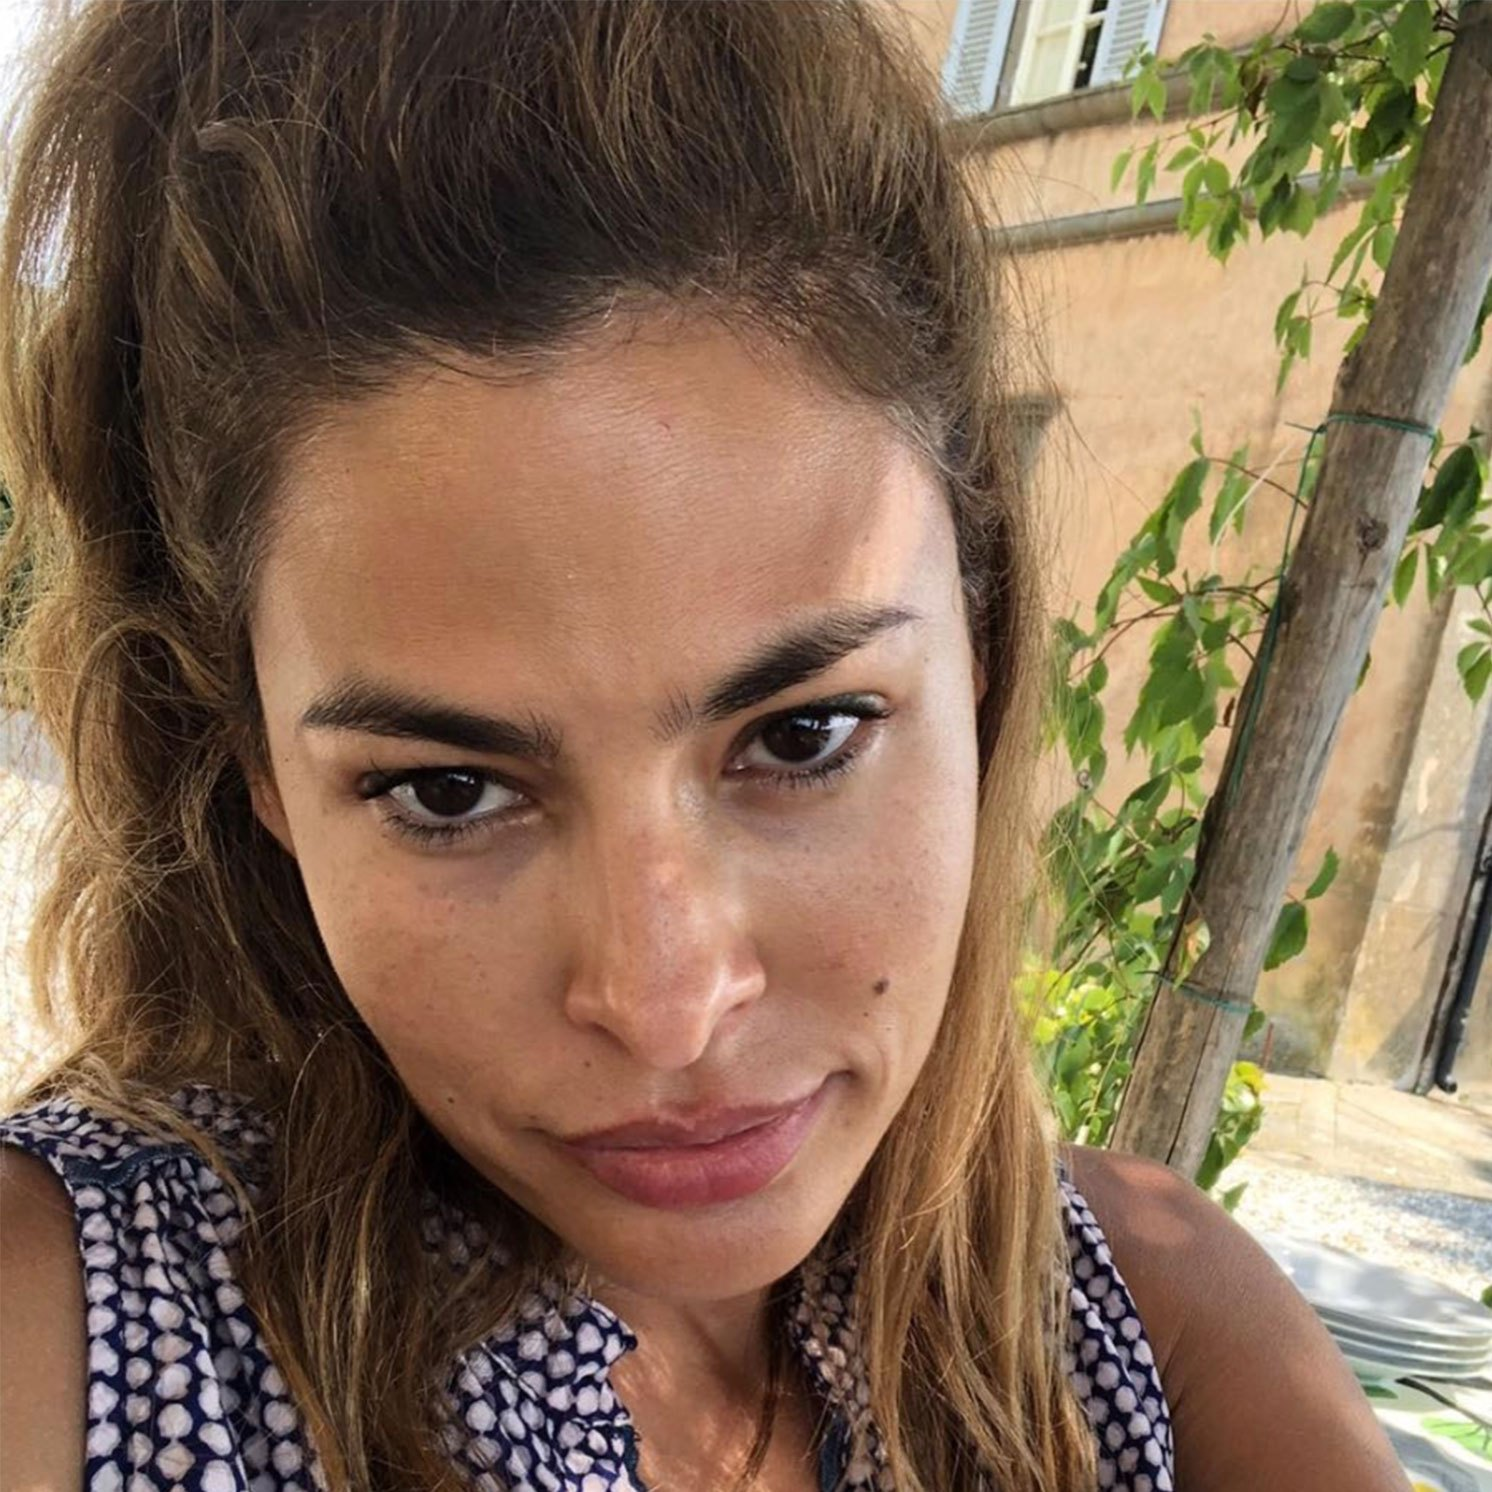 Eva Mendes Shows Off Her Freckles in Rare Selfie